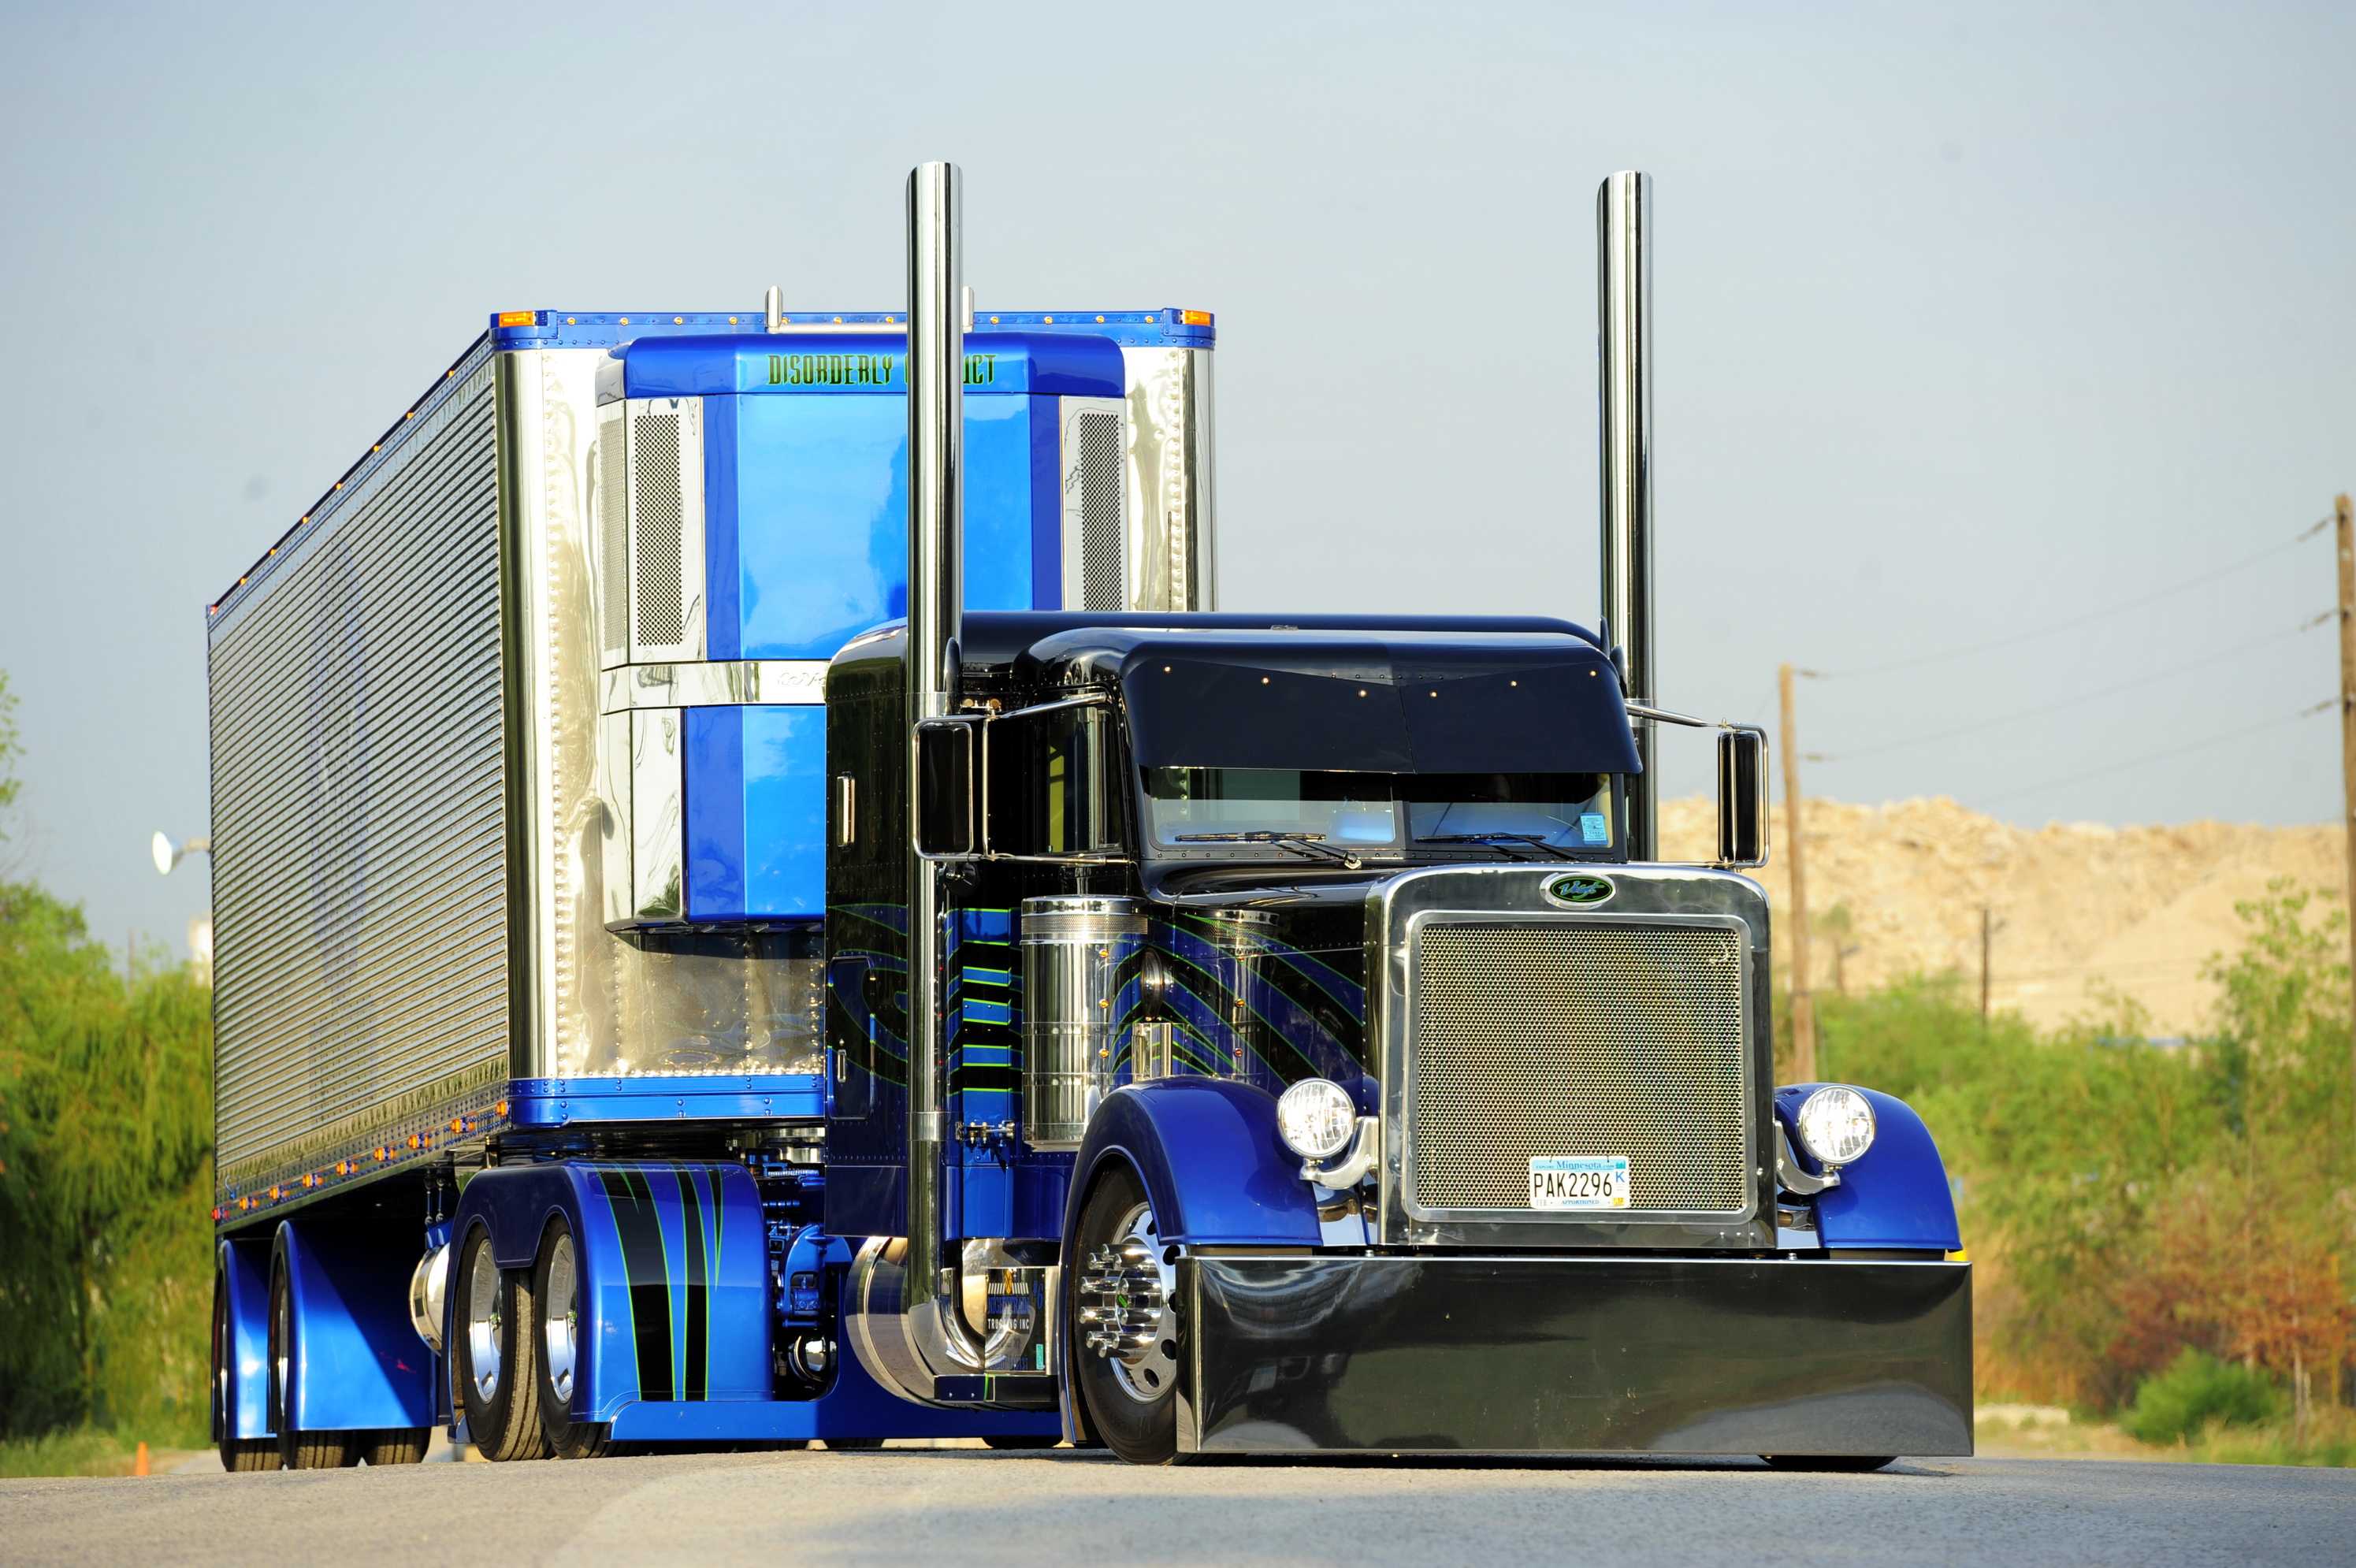 tractor trailer semi custom roads tuning wallpaper background 2990x1990